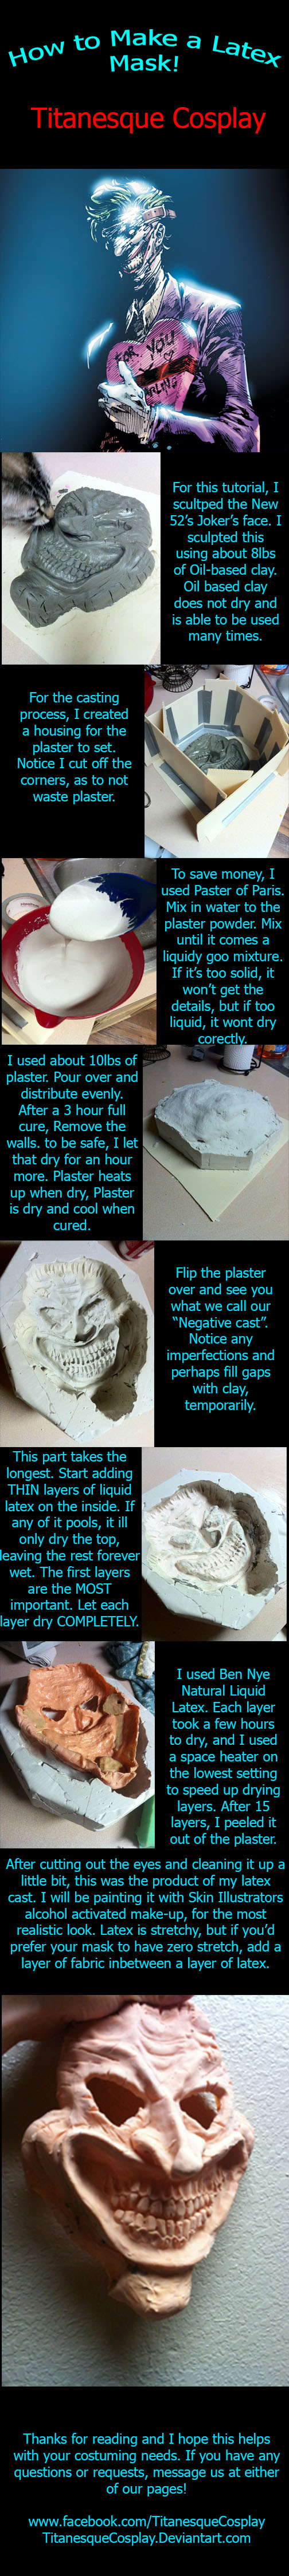 How to Make a Latex Mask by TitanesqueCosplay